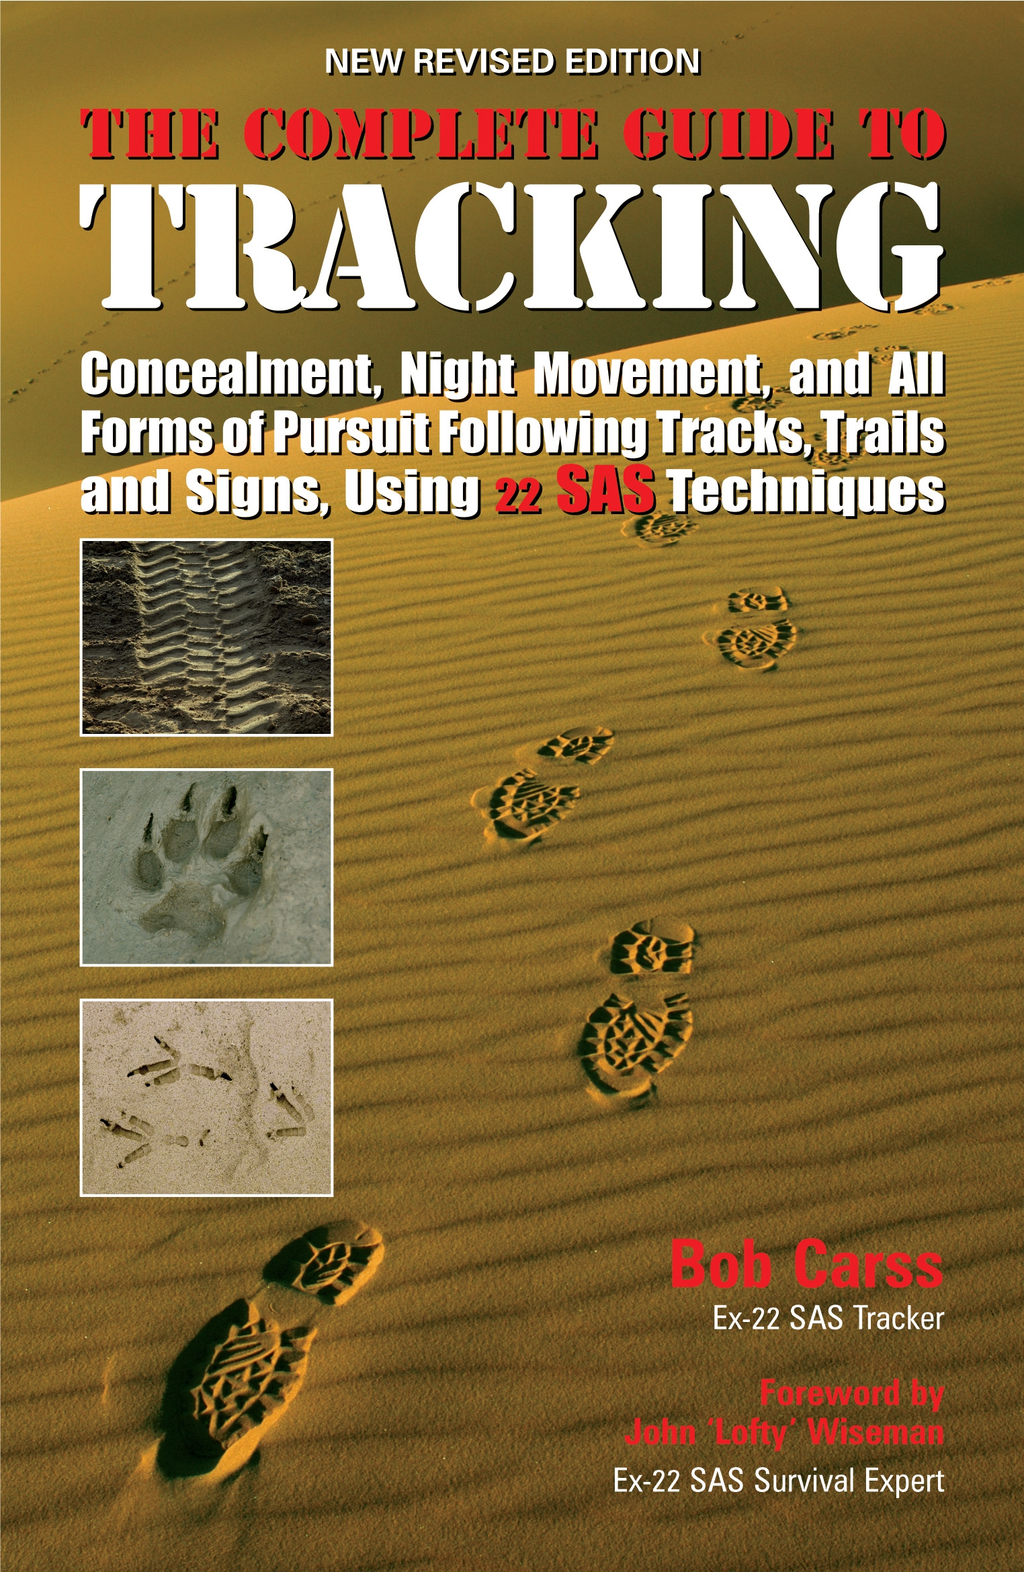 The Complete Guide to Tracking Following tracks,  trails and signs,  concealment,  night movement and all forms of pursuit